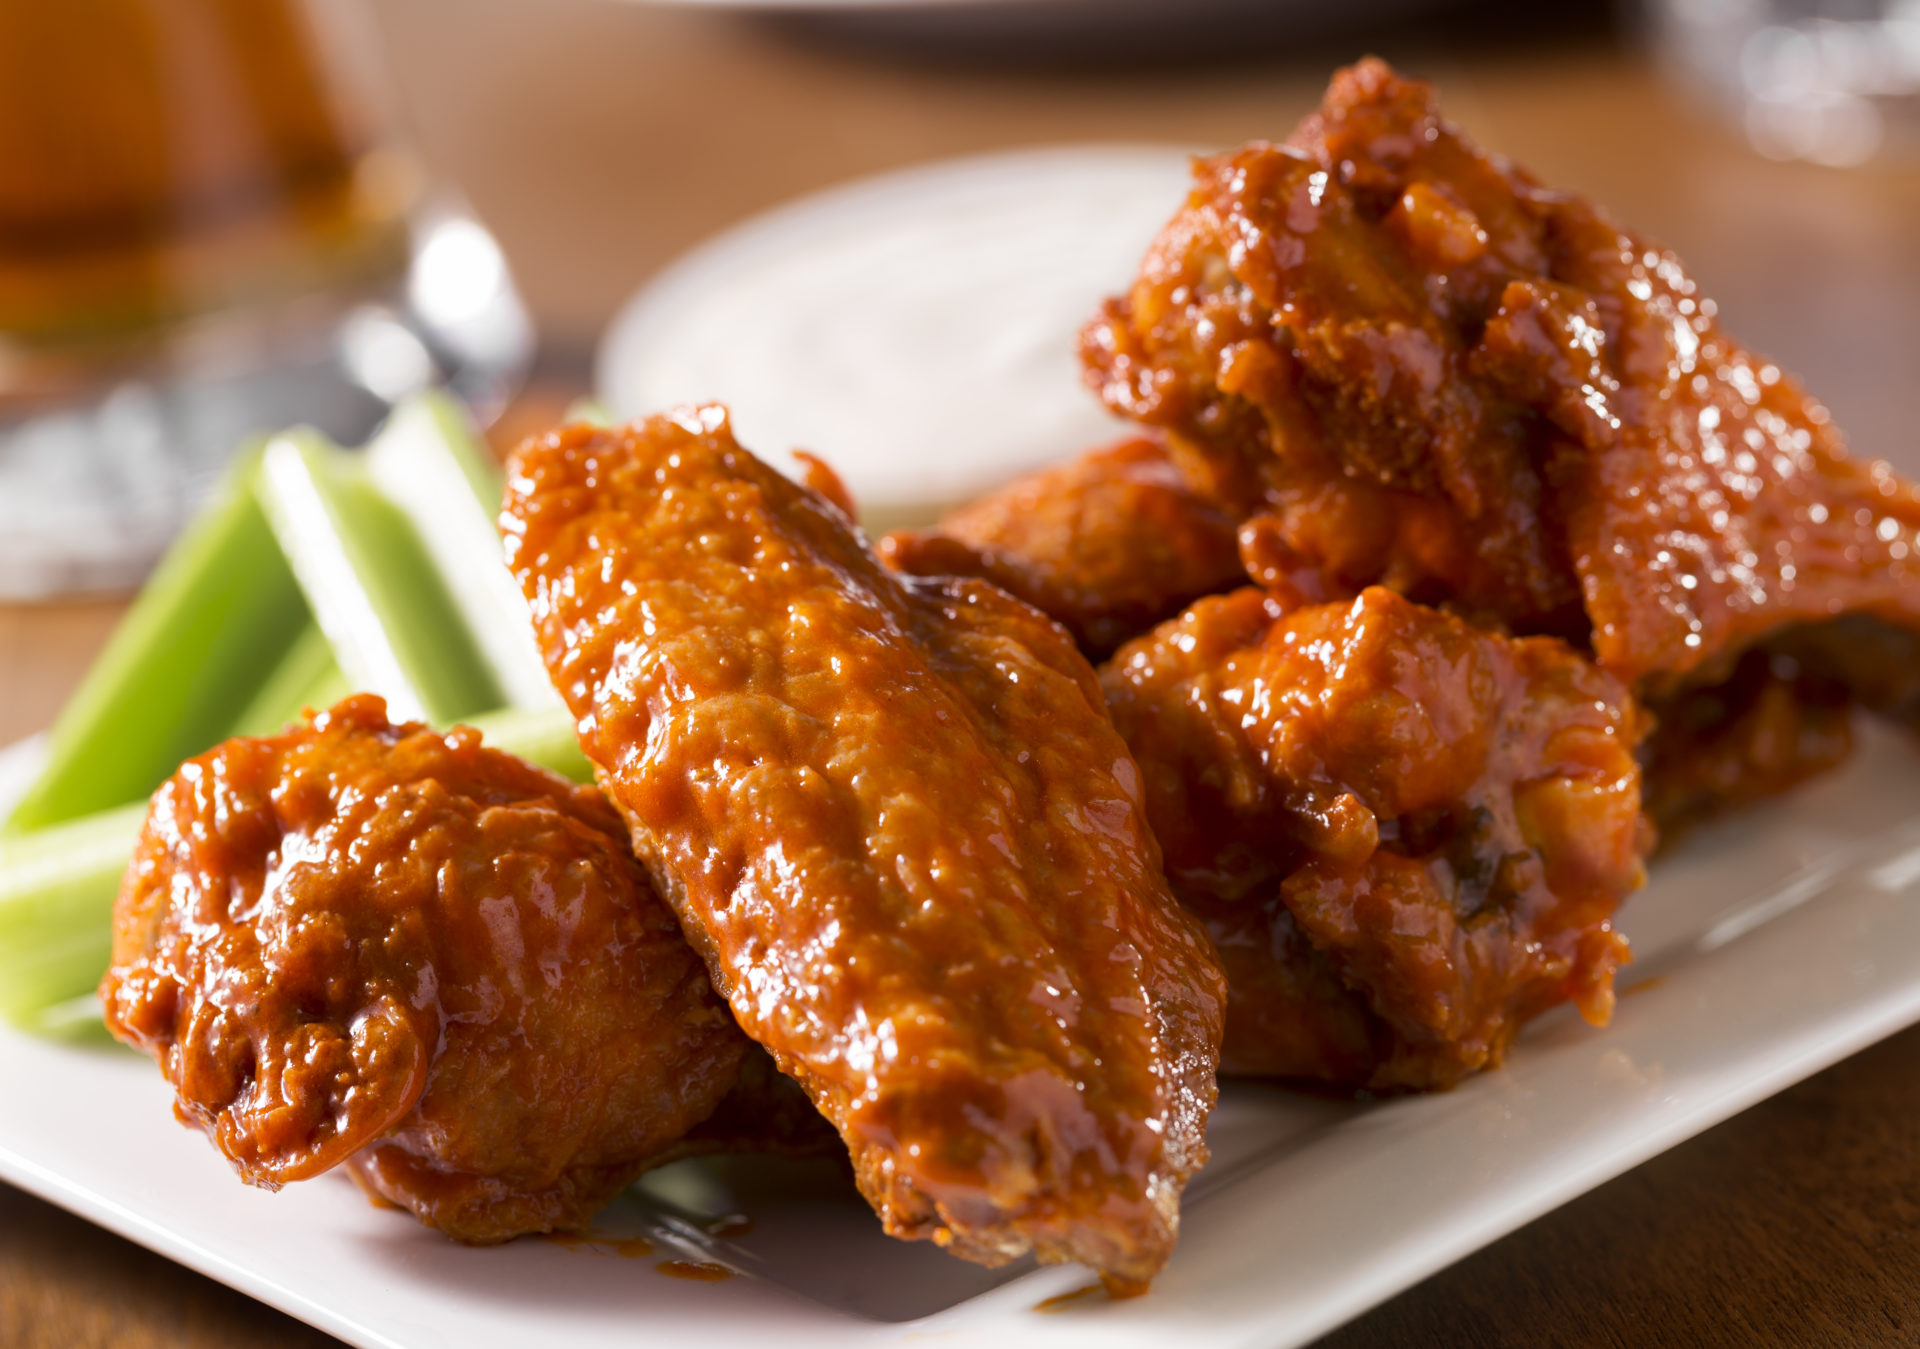 A plate of buffalo style chicken wings with celery and blue cheese with a beer on a table